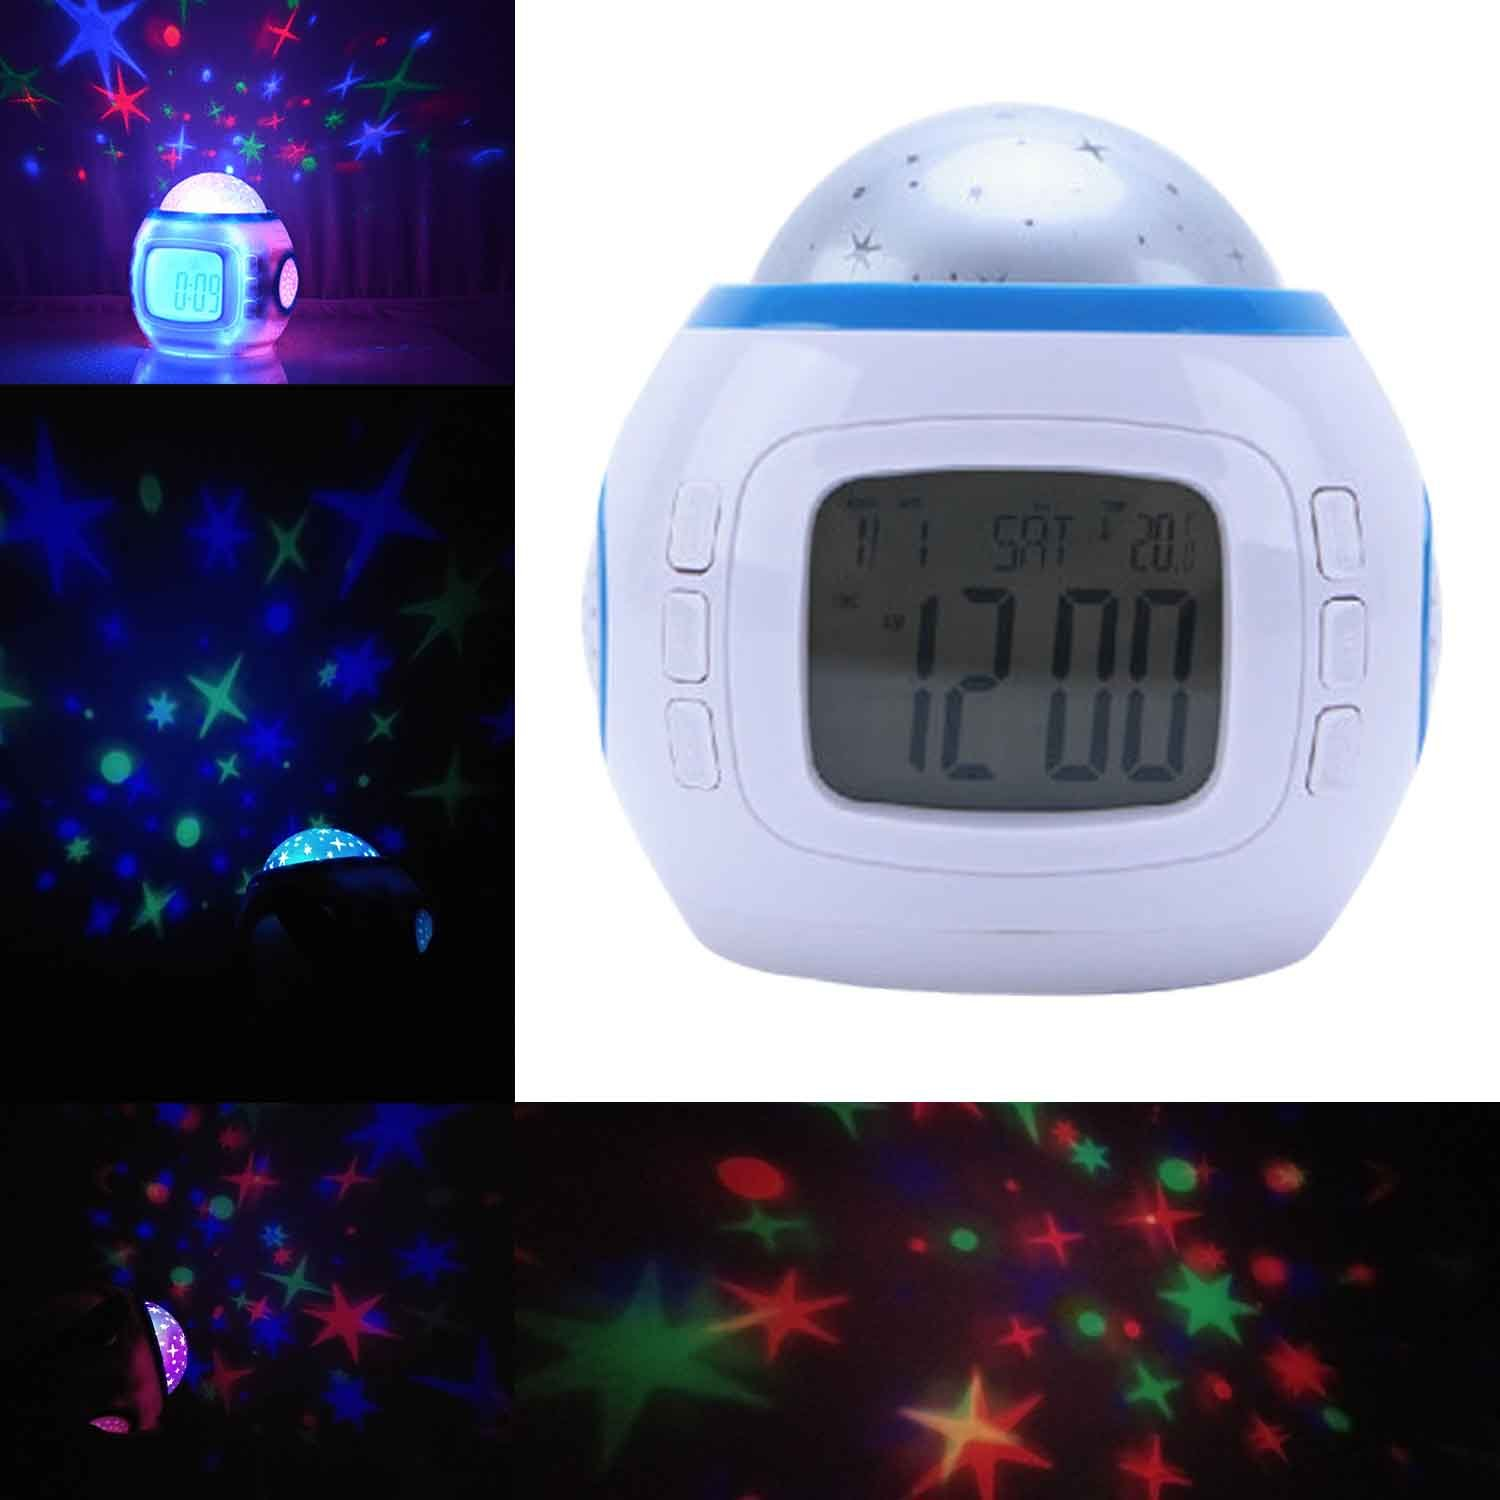 Star Sky Night Light Projector Lamp Music Digital Alarm Clock With Backlight Calendar Thermometer for Children Kids Christmas Gift By Sunshine Top